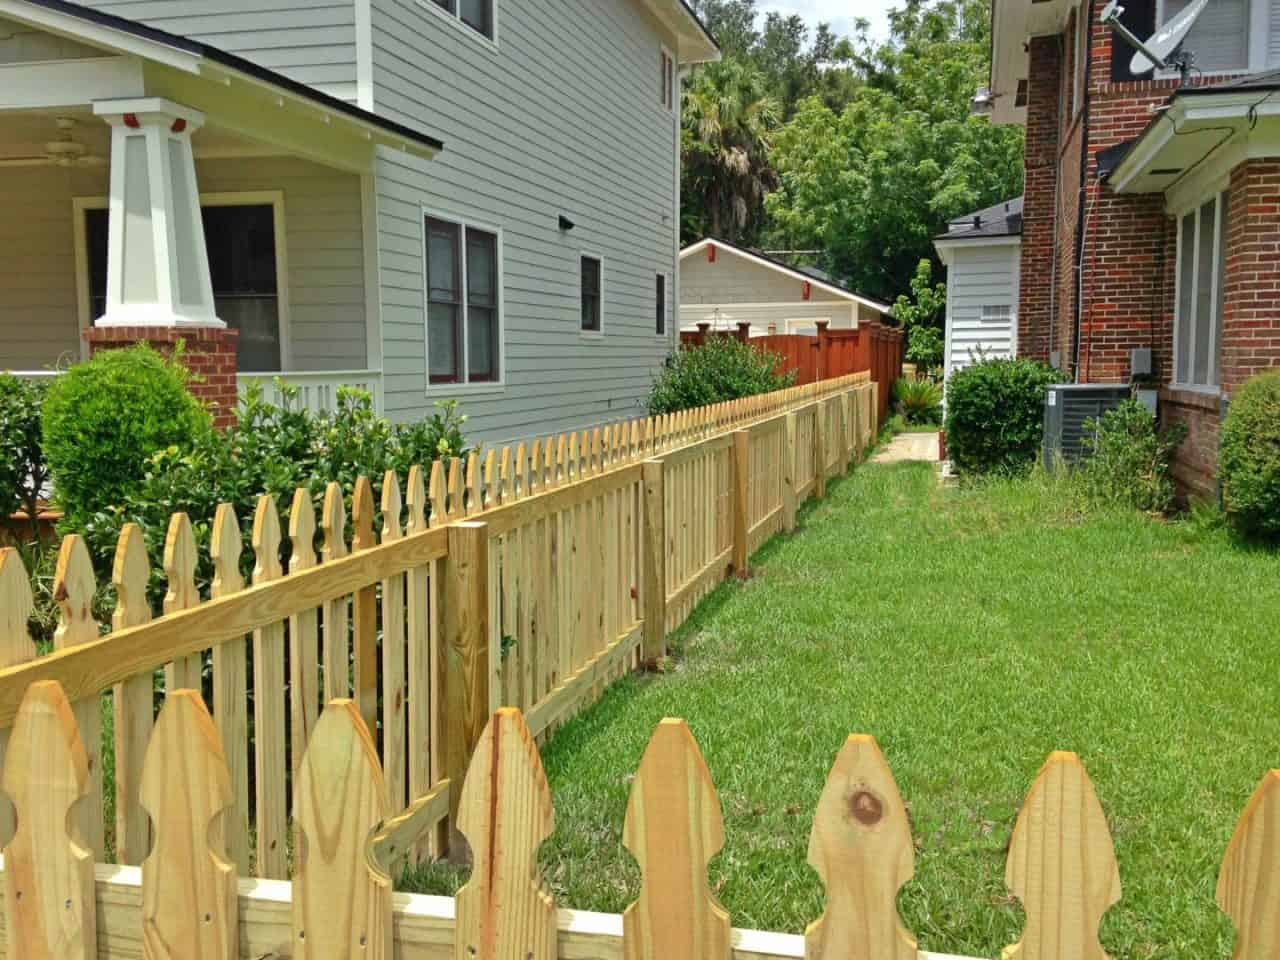 https://www.superiorfenceandrail.com/wp-content/uploads/2020/02/Five-Reasons-to-Fence-Your-Nashville-Backyard-1280x960.jpg